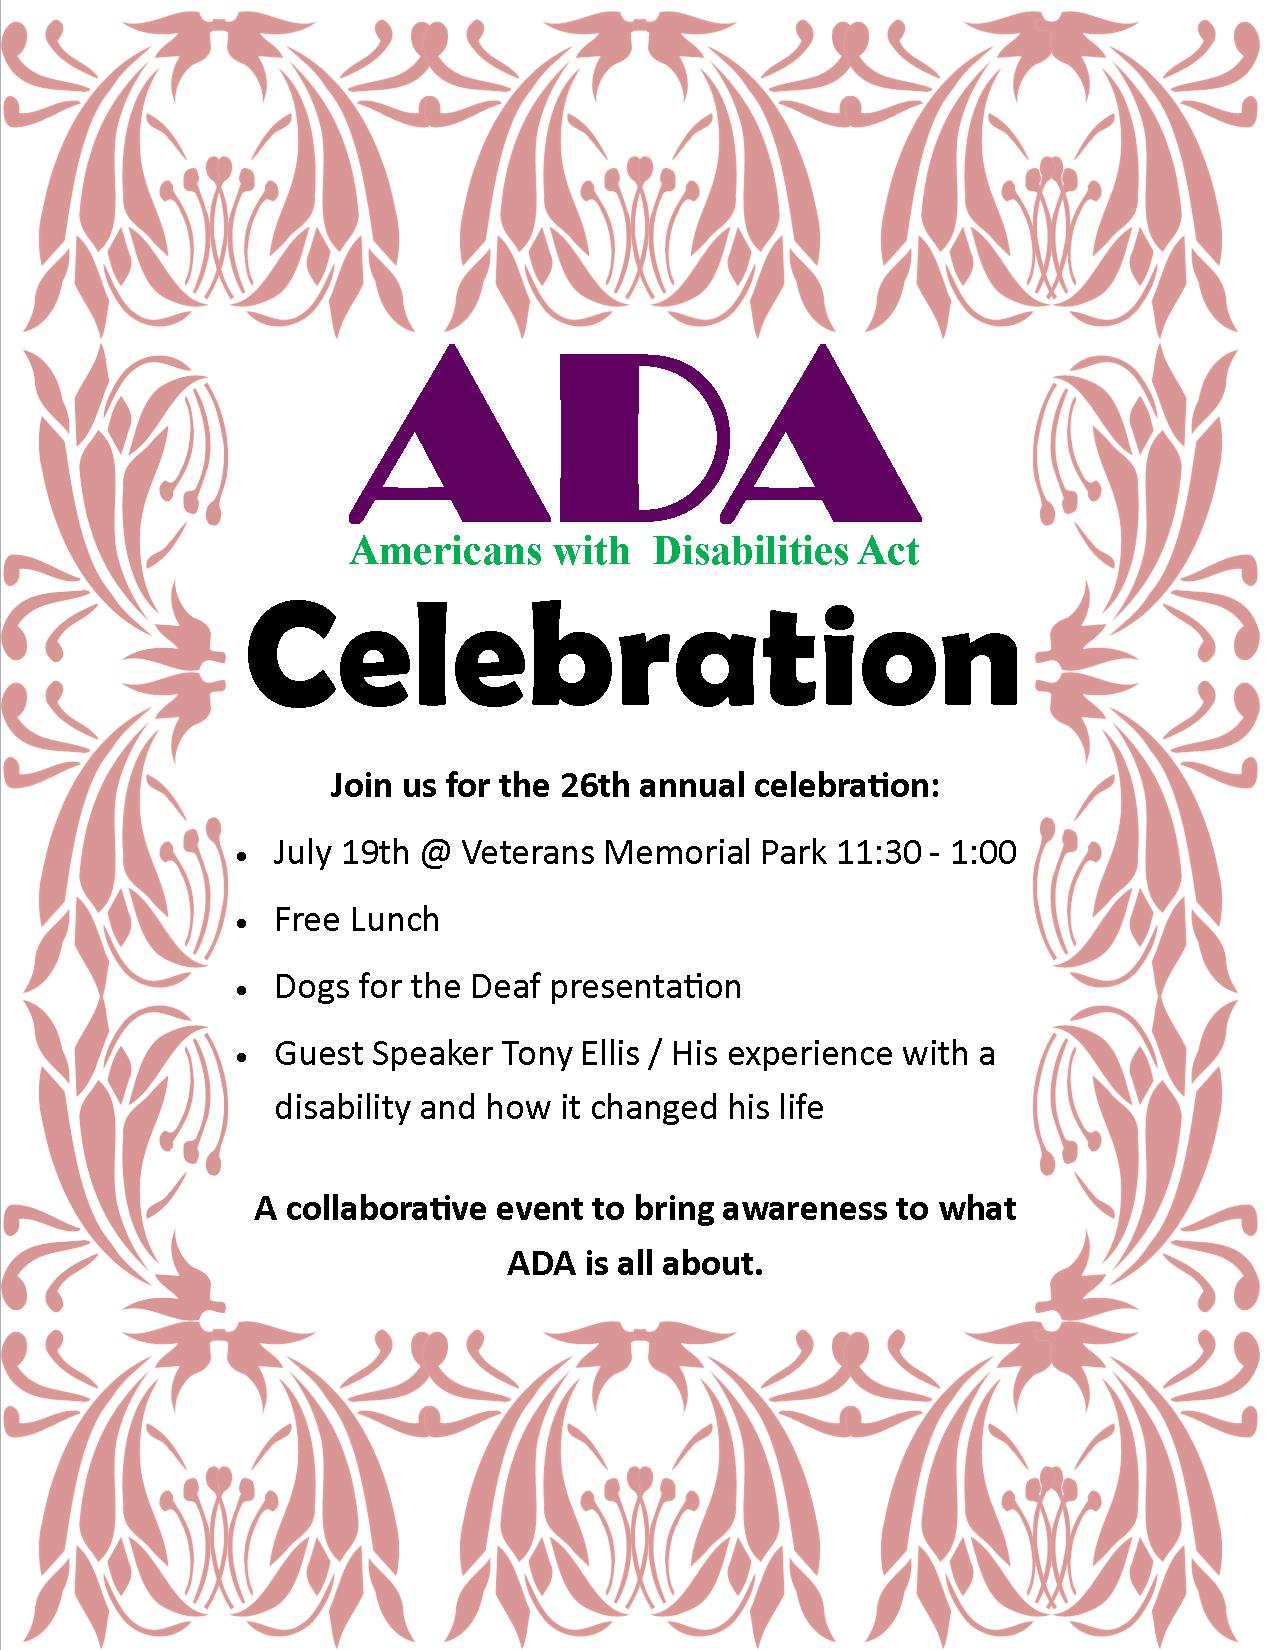 ADA Celebration 2016 Flyer